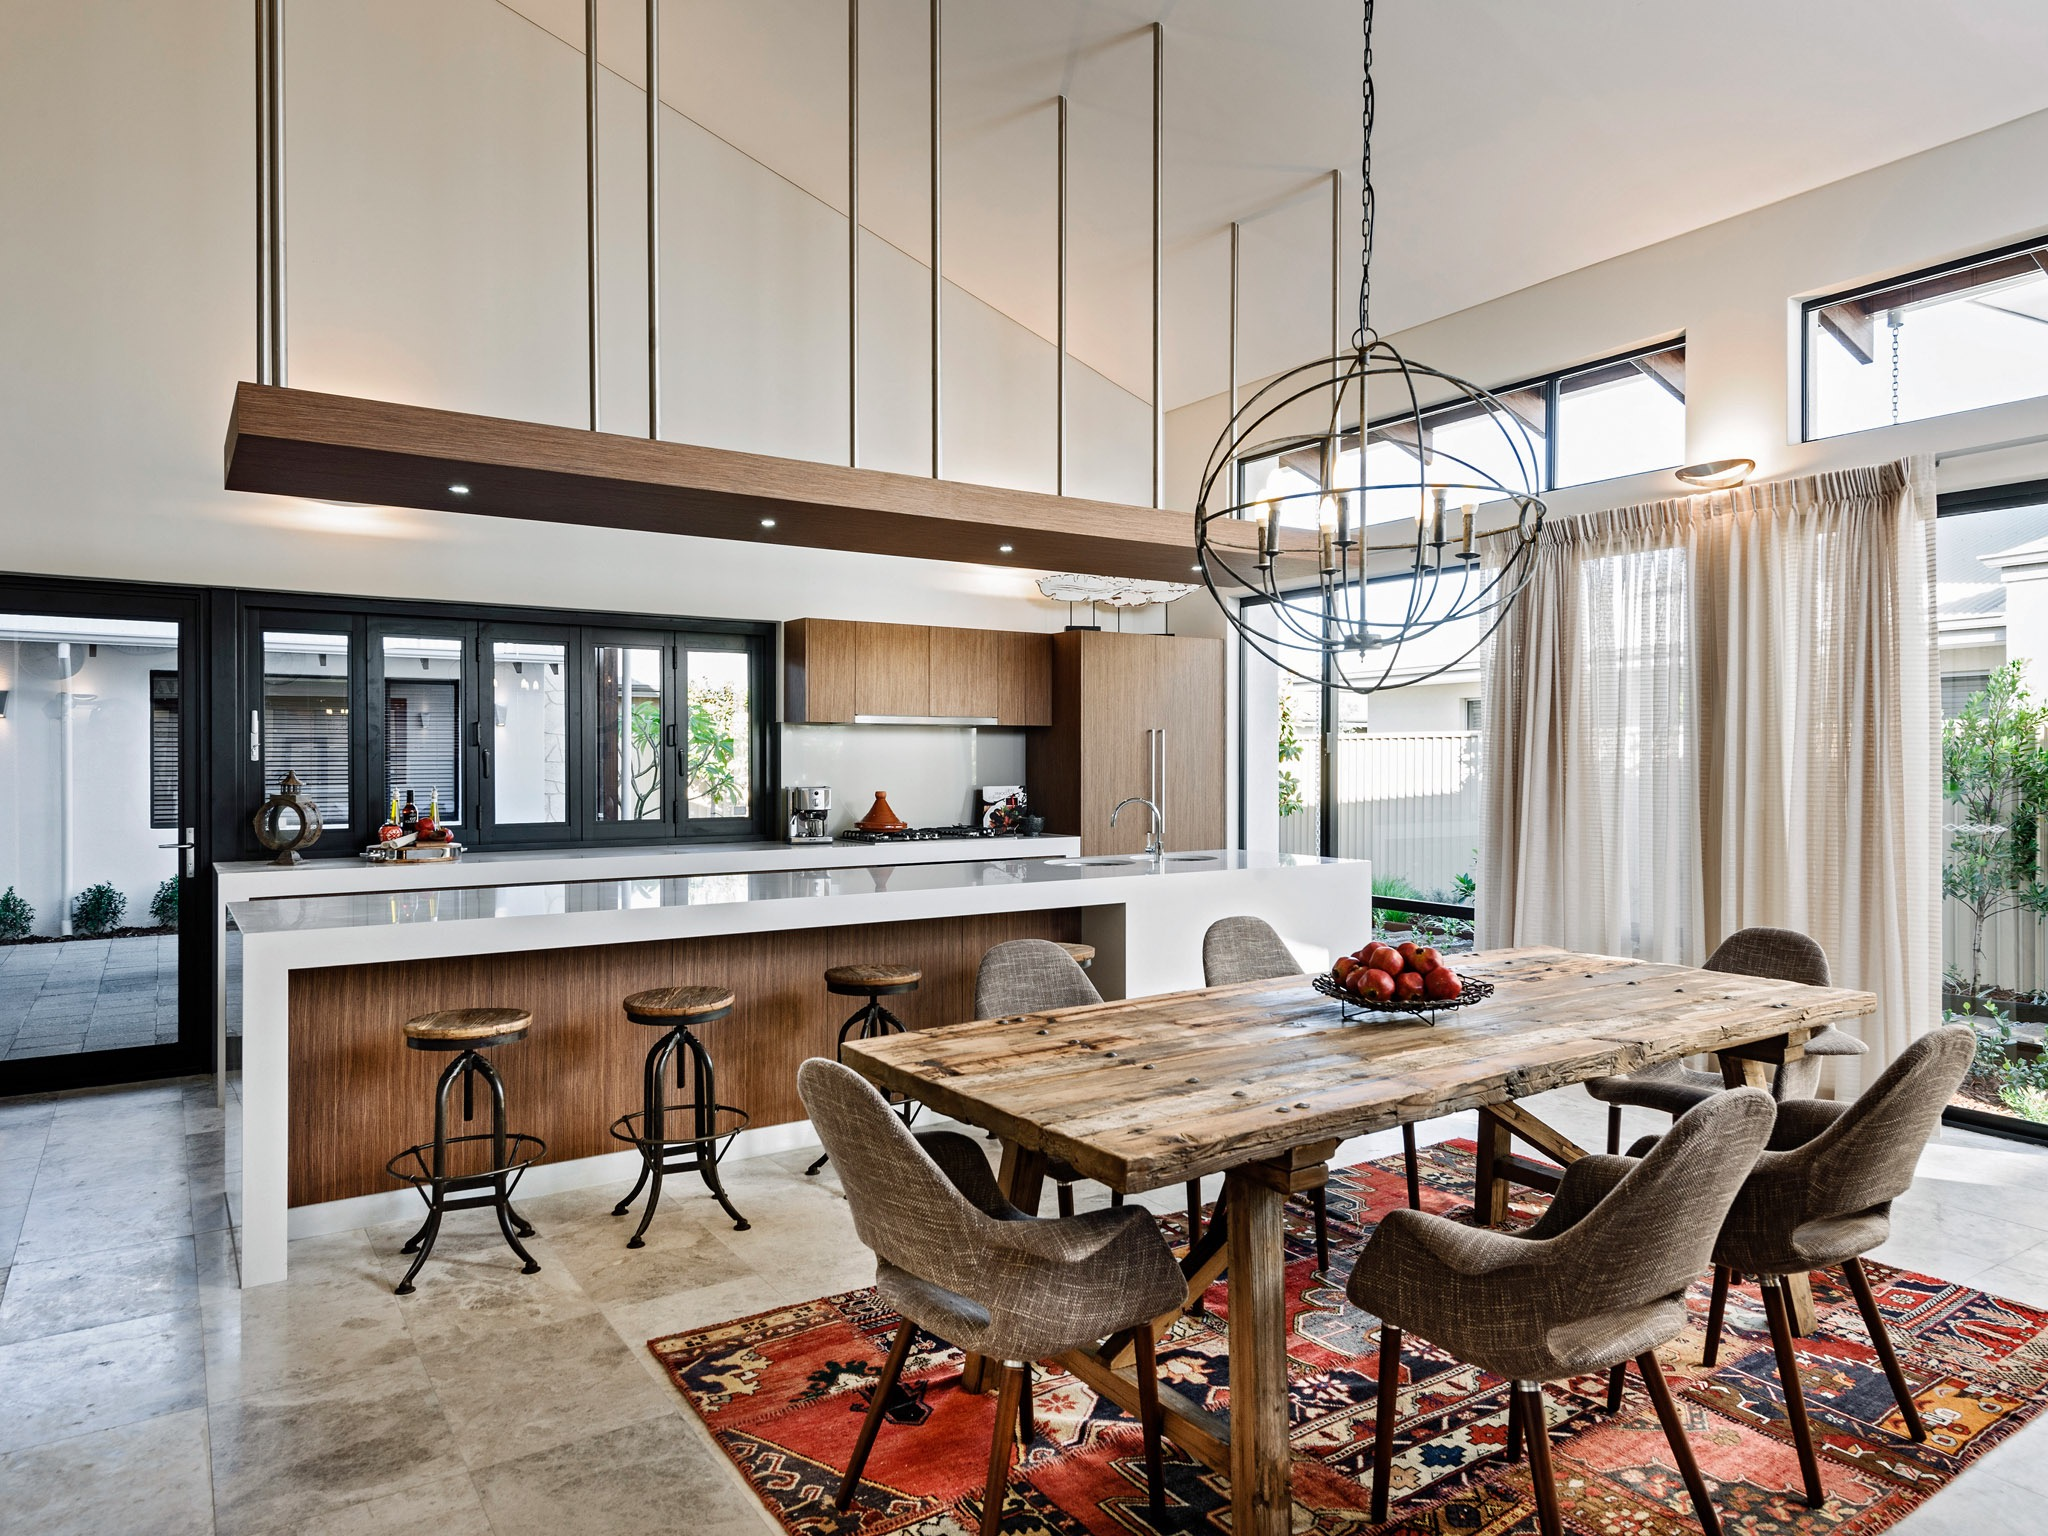 Open Concept Kitchens And Living Spaces With Flow (Image 24 of 31)